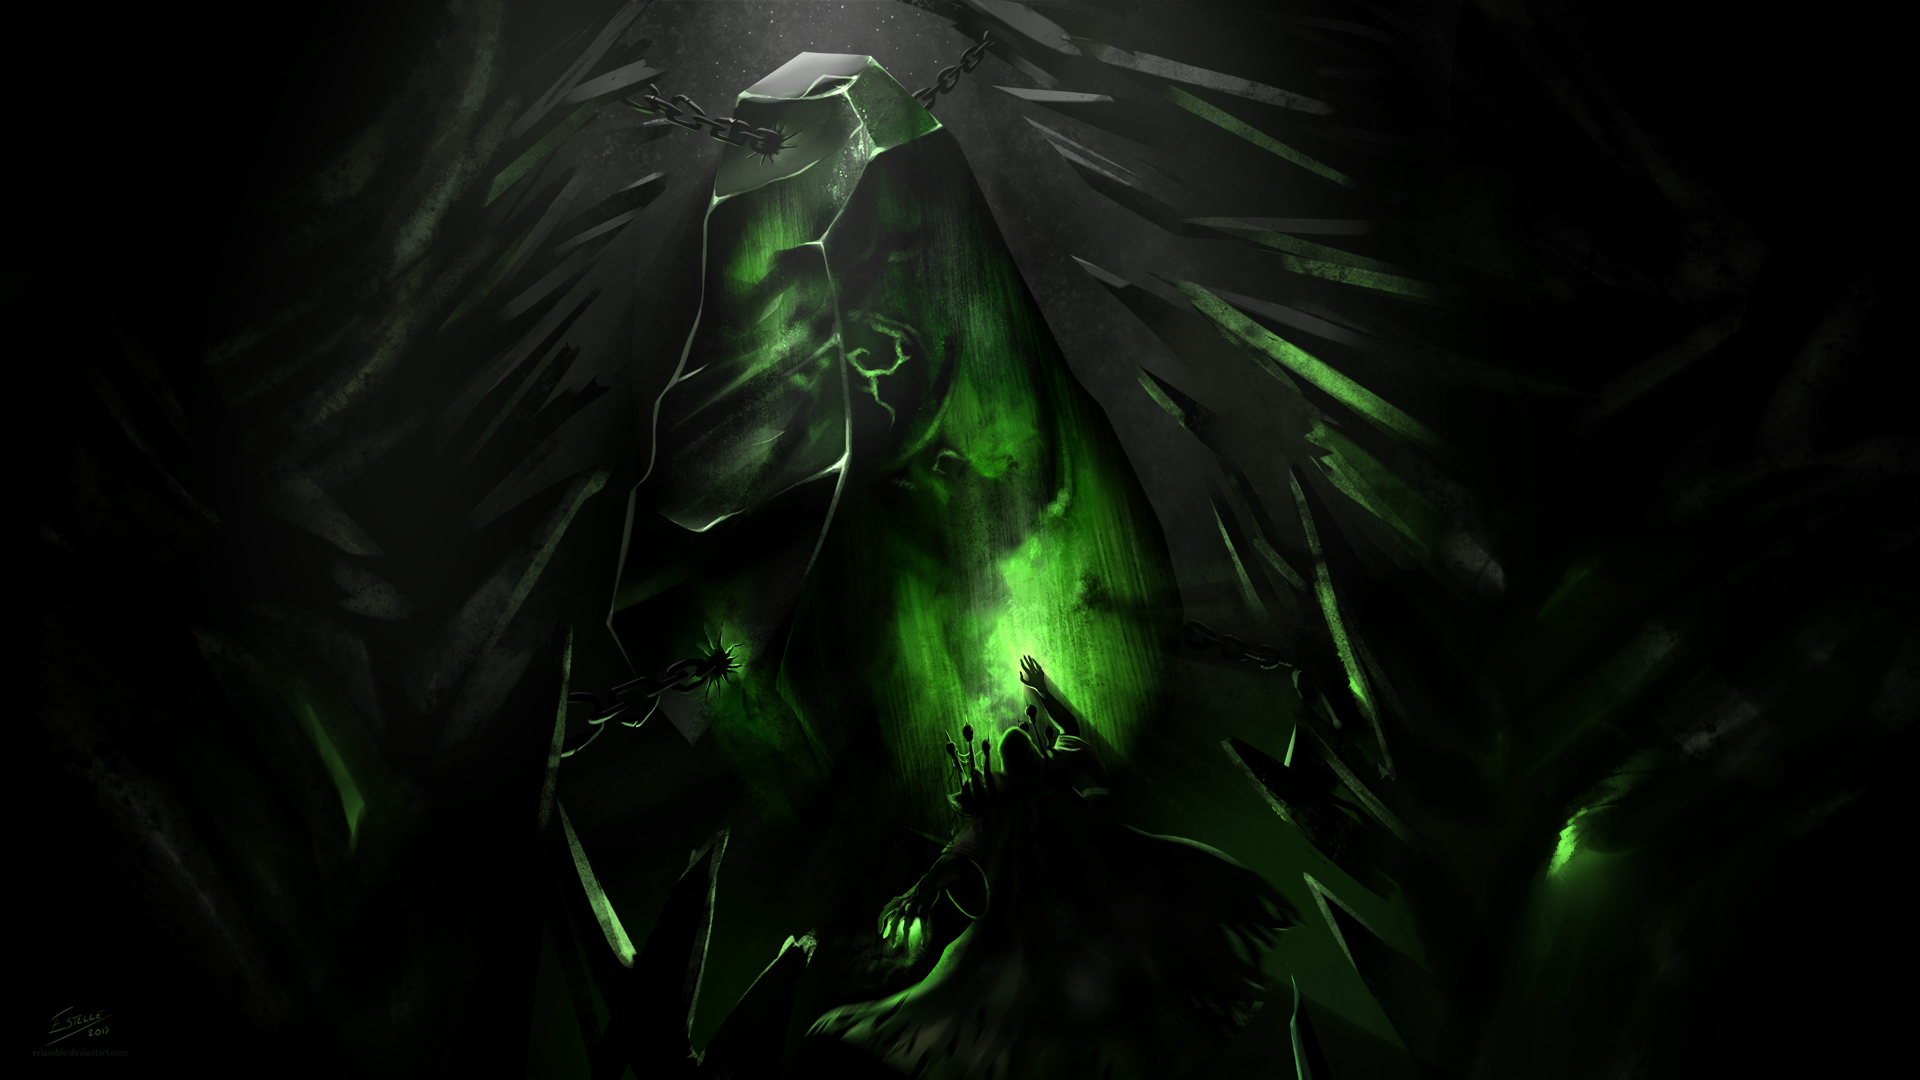 World Of Warcraft Backgrounds 1920x1080: World Of Warcraft: Legion Wallpapers, Pictures, Images